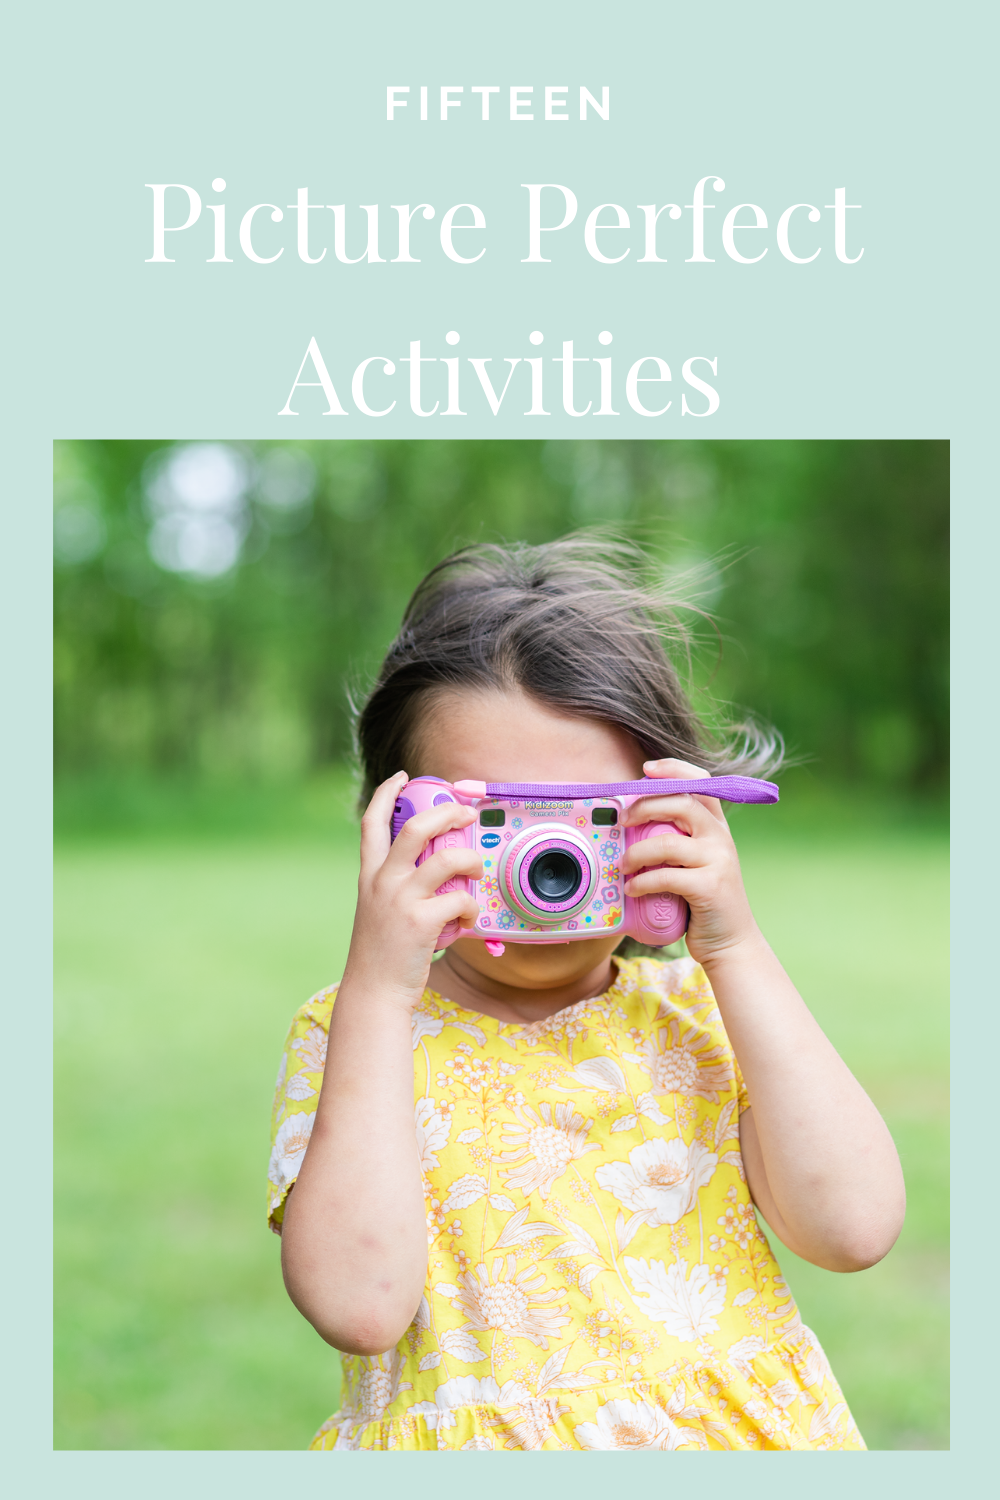 15 Picture Perfect Activities